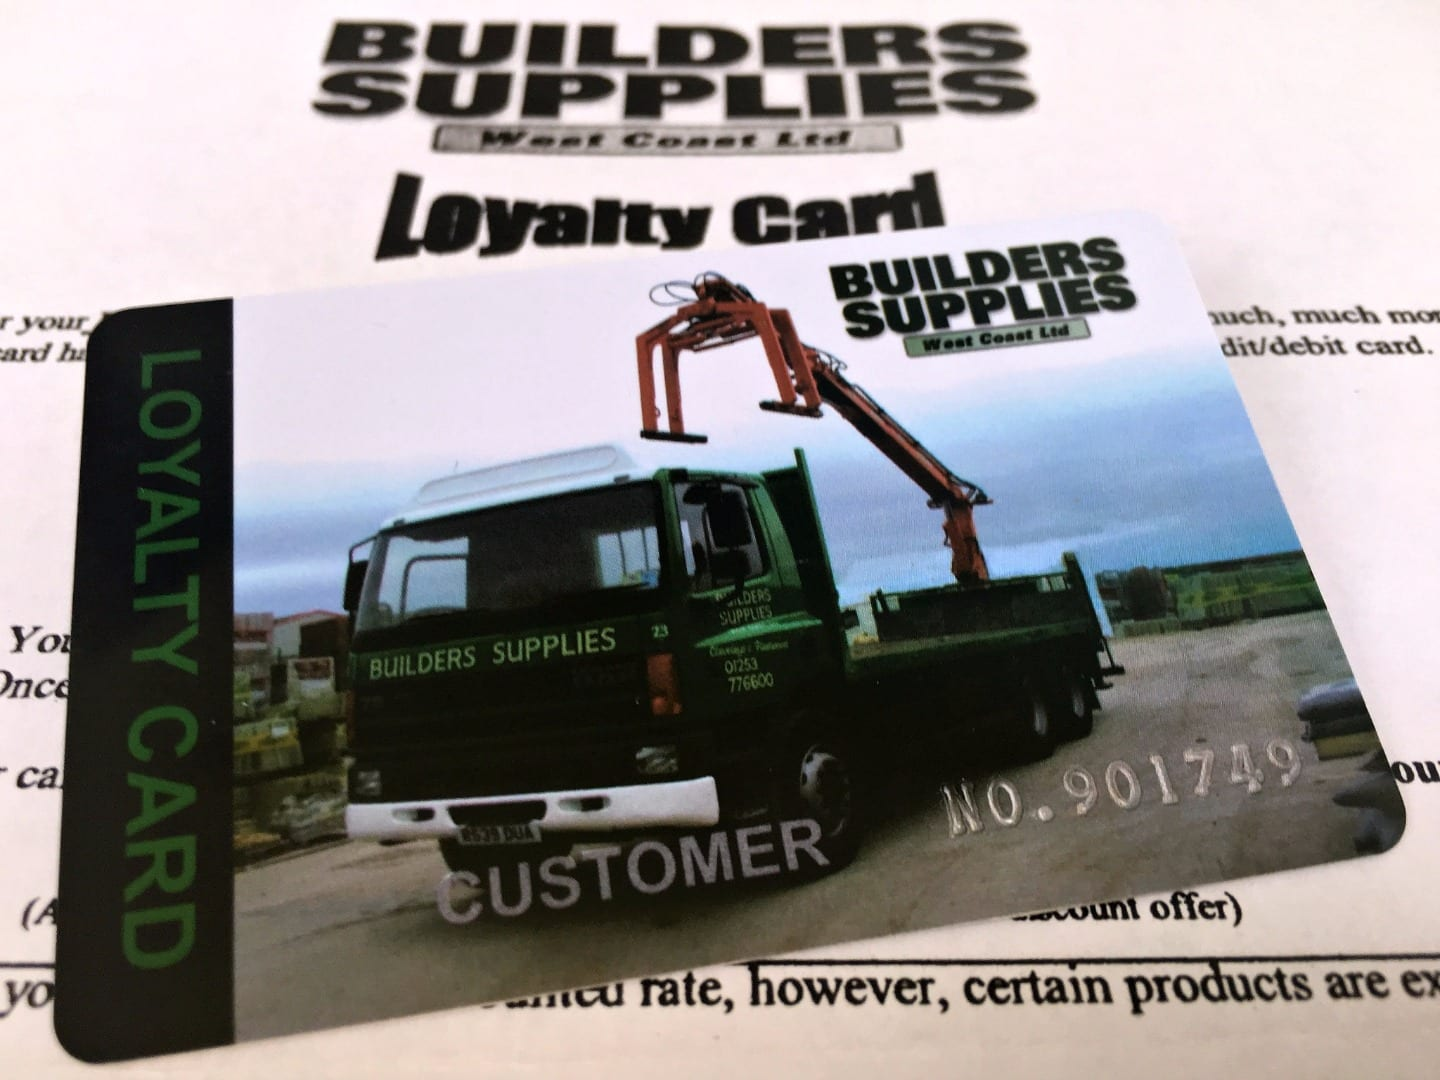 Builders Supplies loyalty card